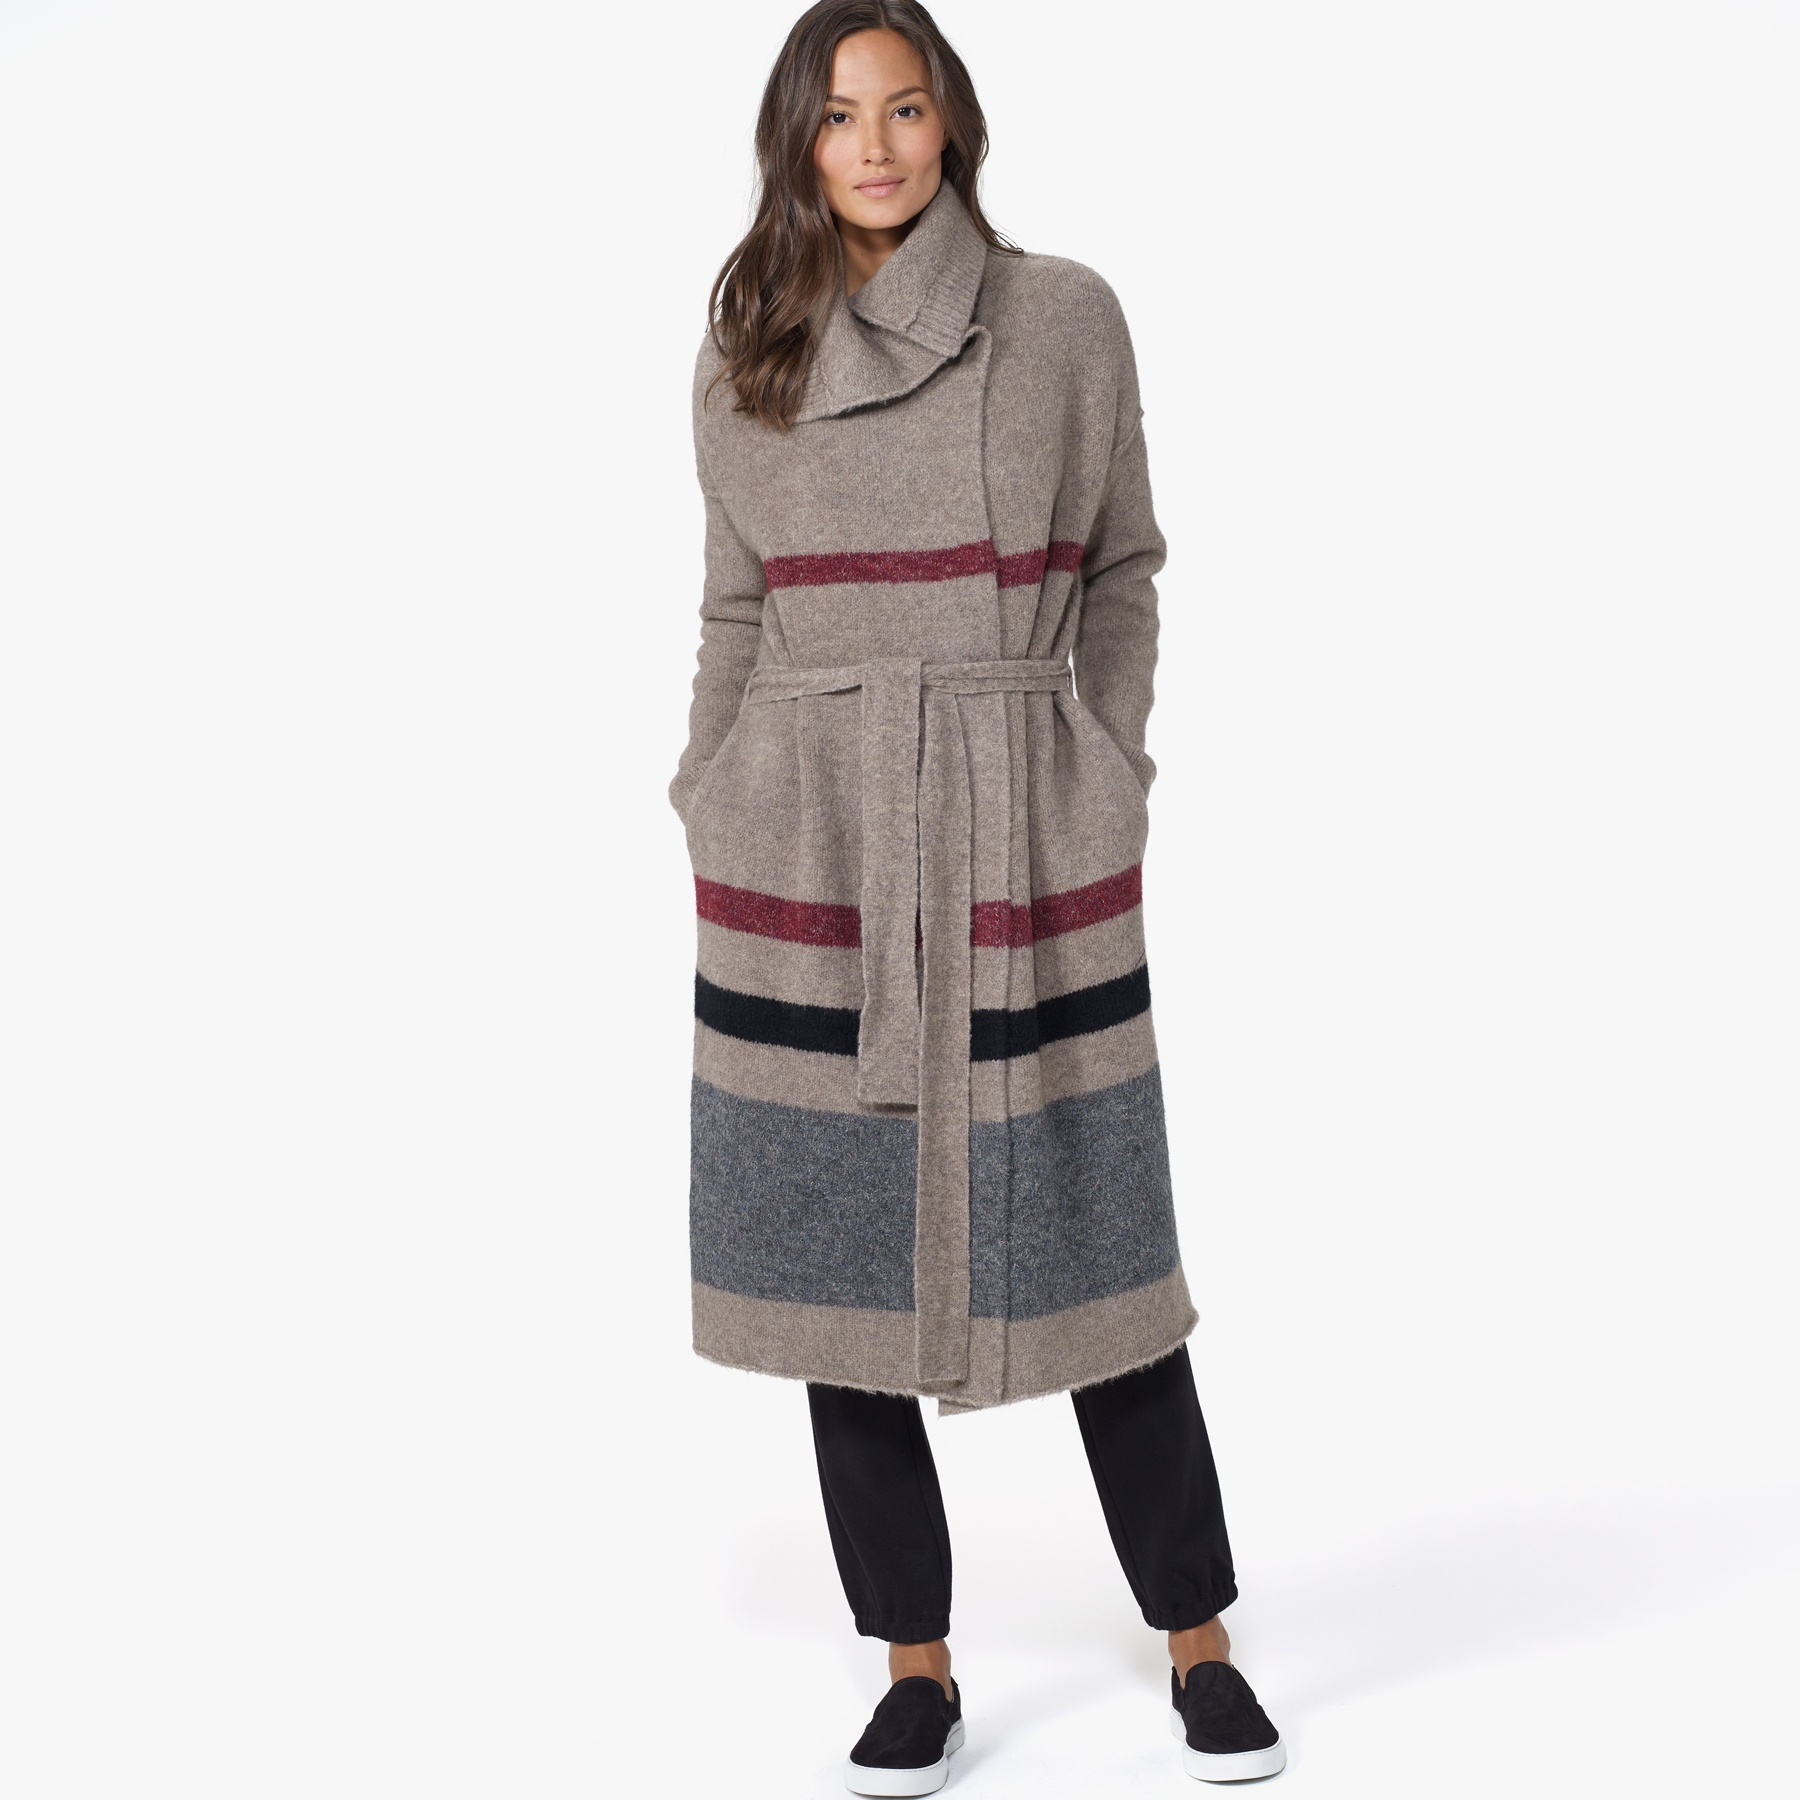 James perse Belted Striped Sweater Coat in Gray | Lyst